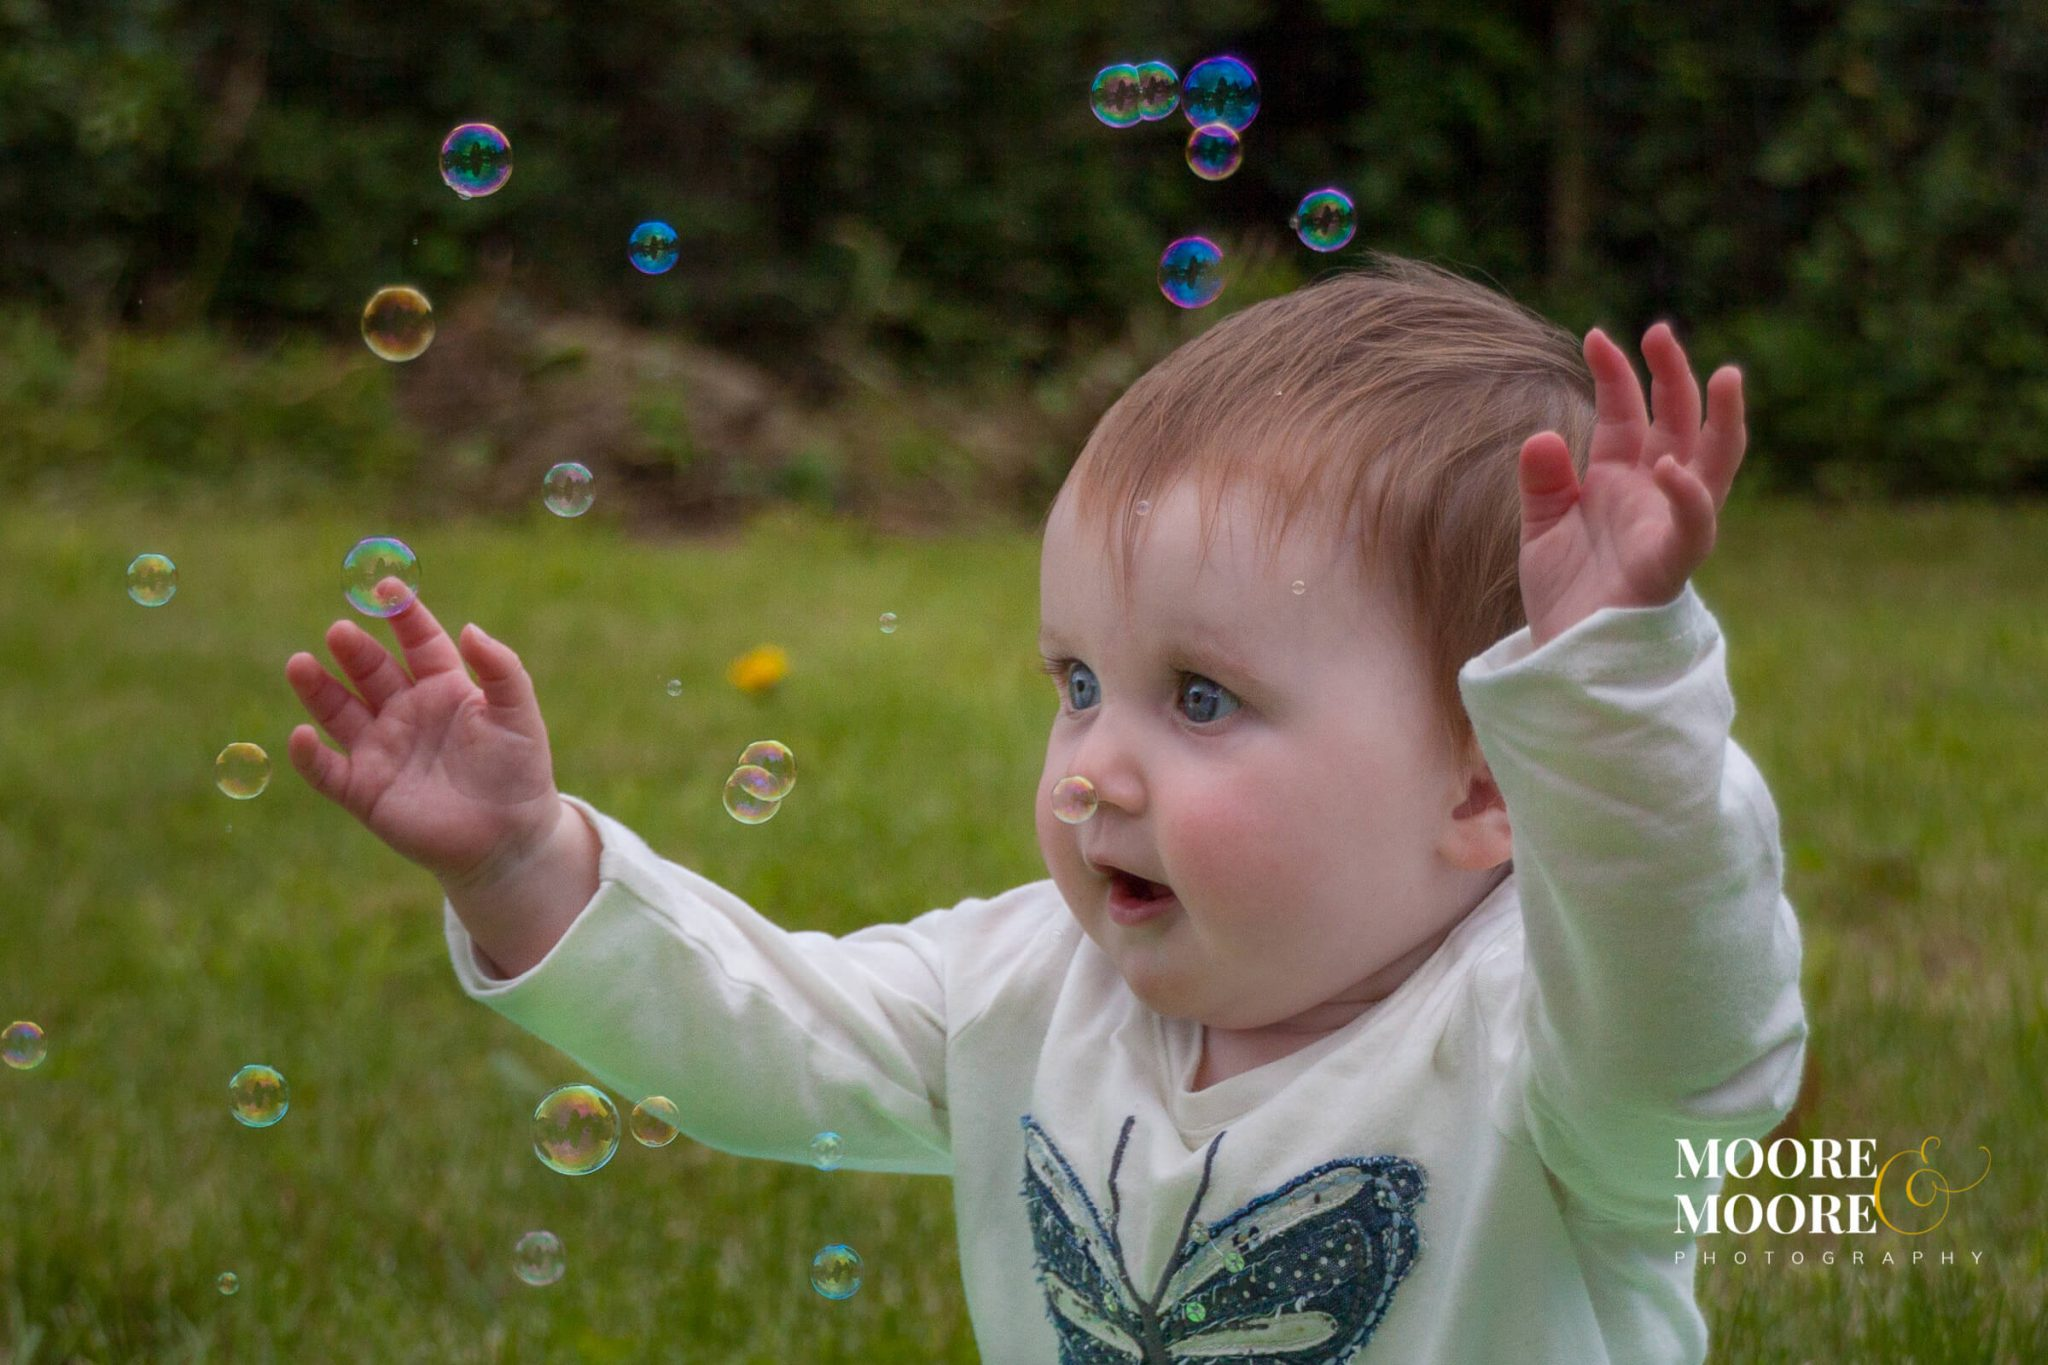 child-with-bubbles-photography-portrait photography